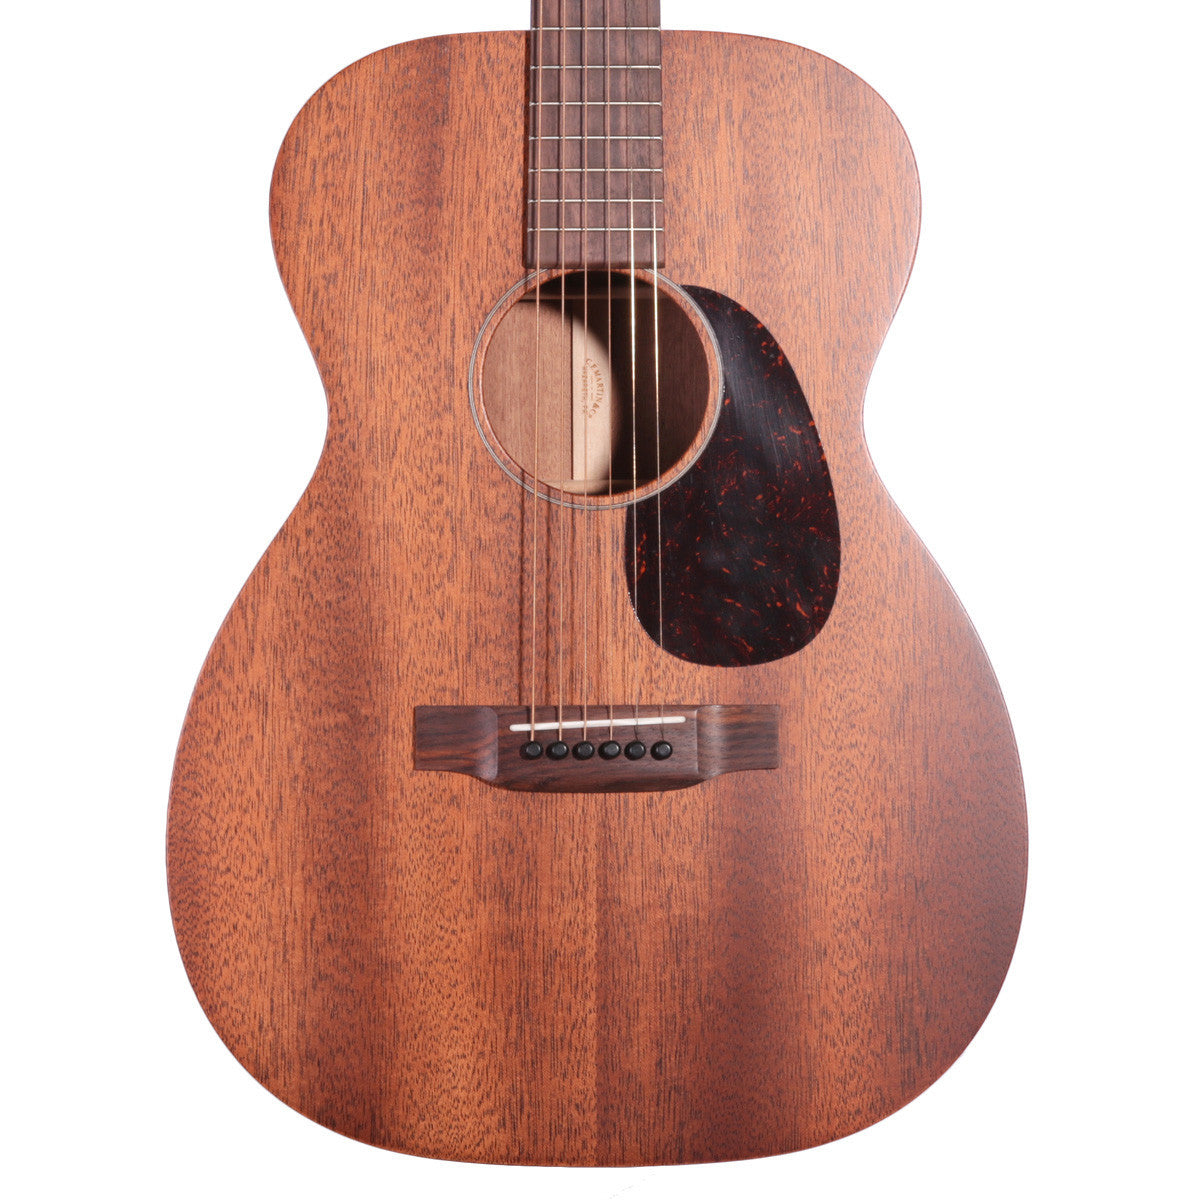 Martin 00-15M - 15 Series - Vintage Guitar Boutique - 1